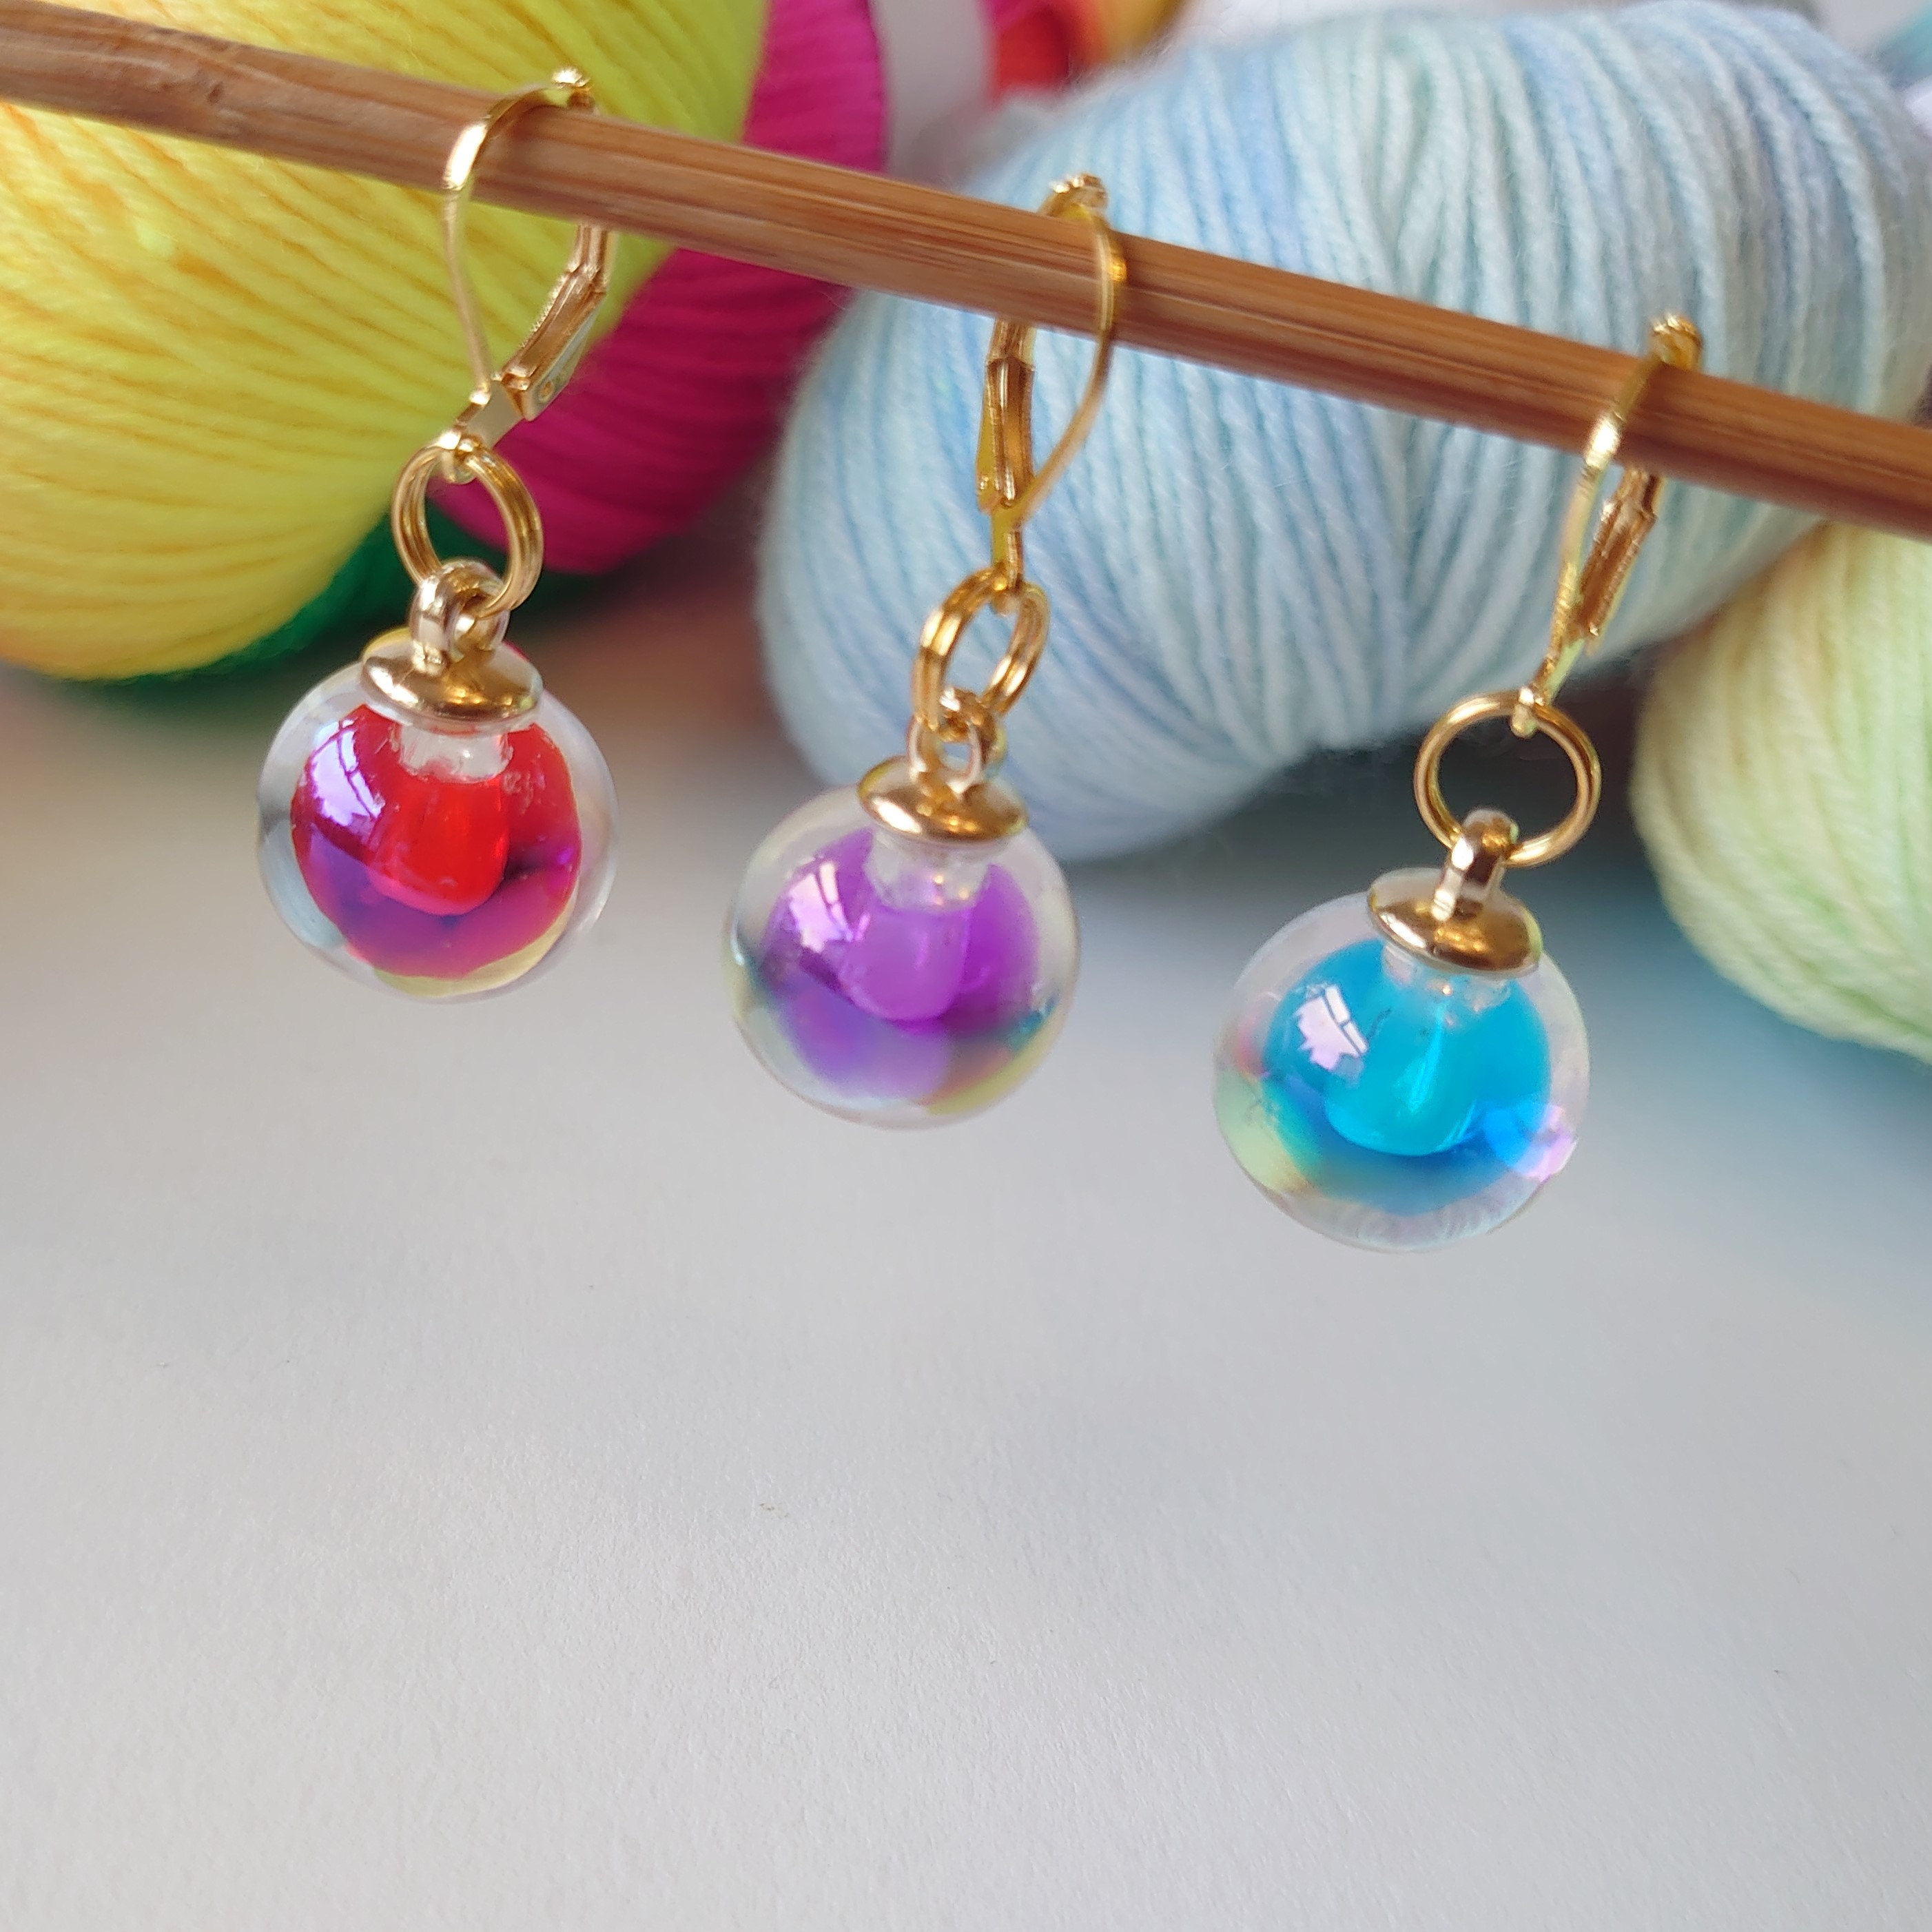 Mixed Glass Stitch Markers